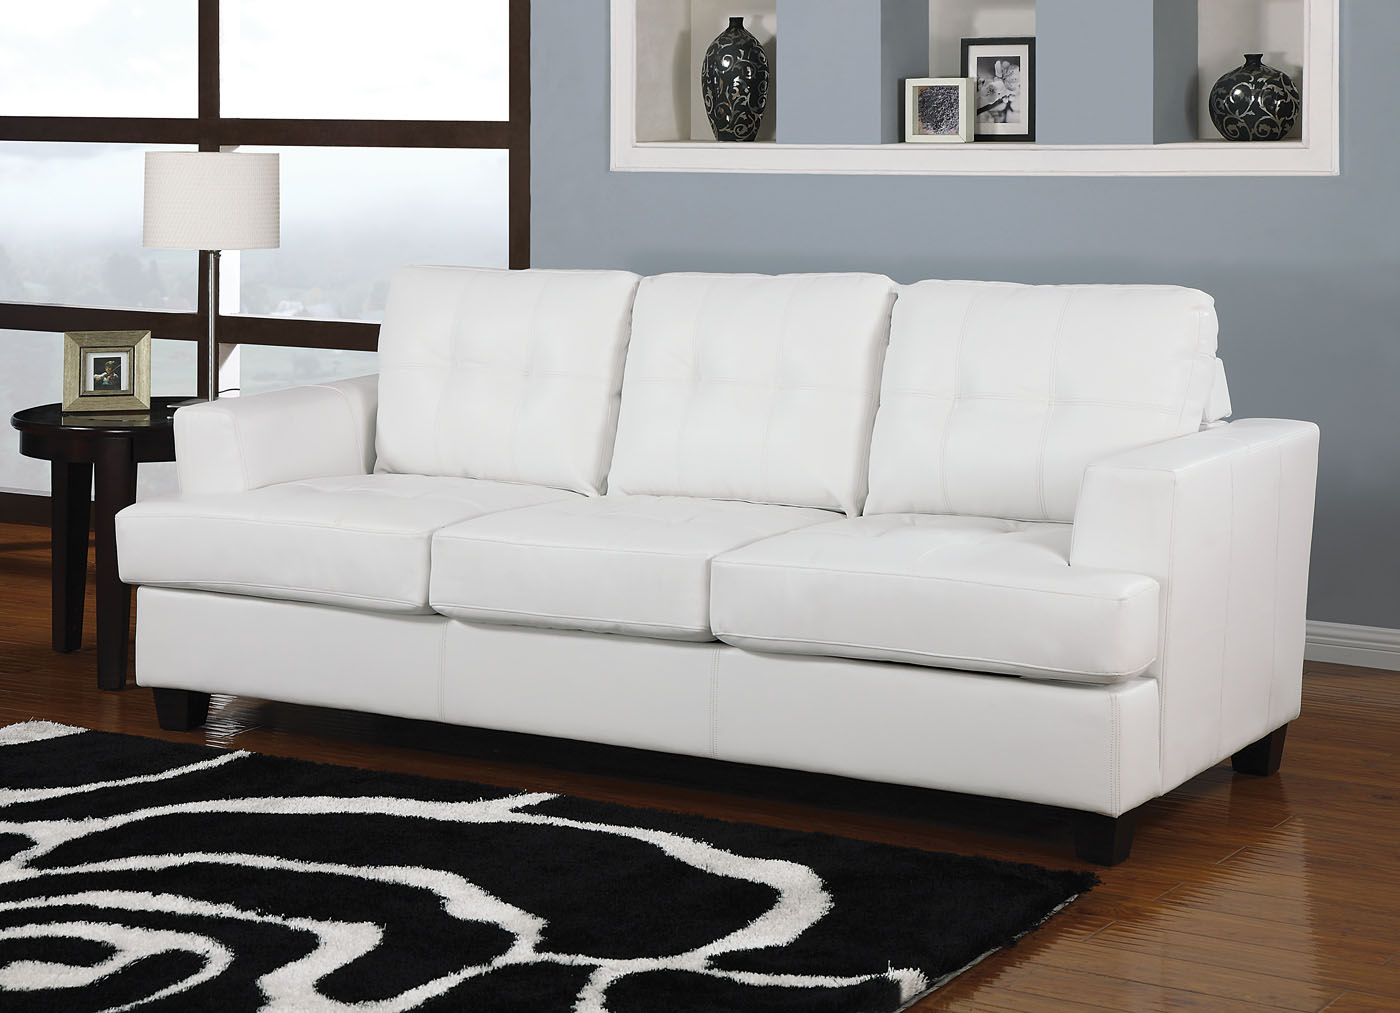 Acme Diamond Bonded Leather Sofa Sleeper In White 15062